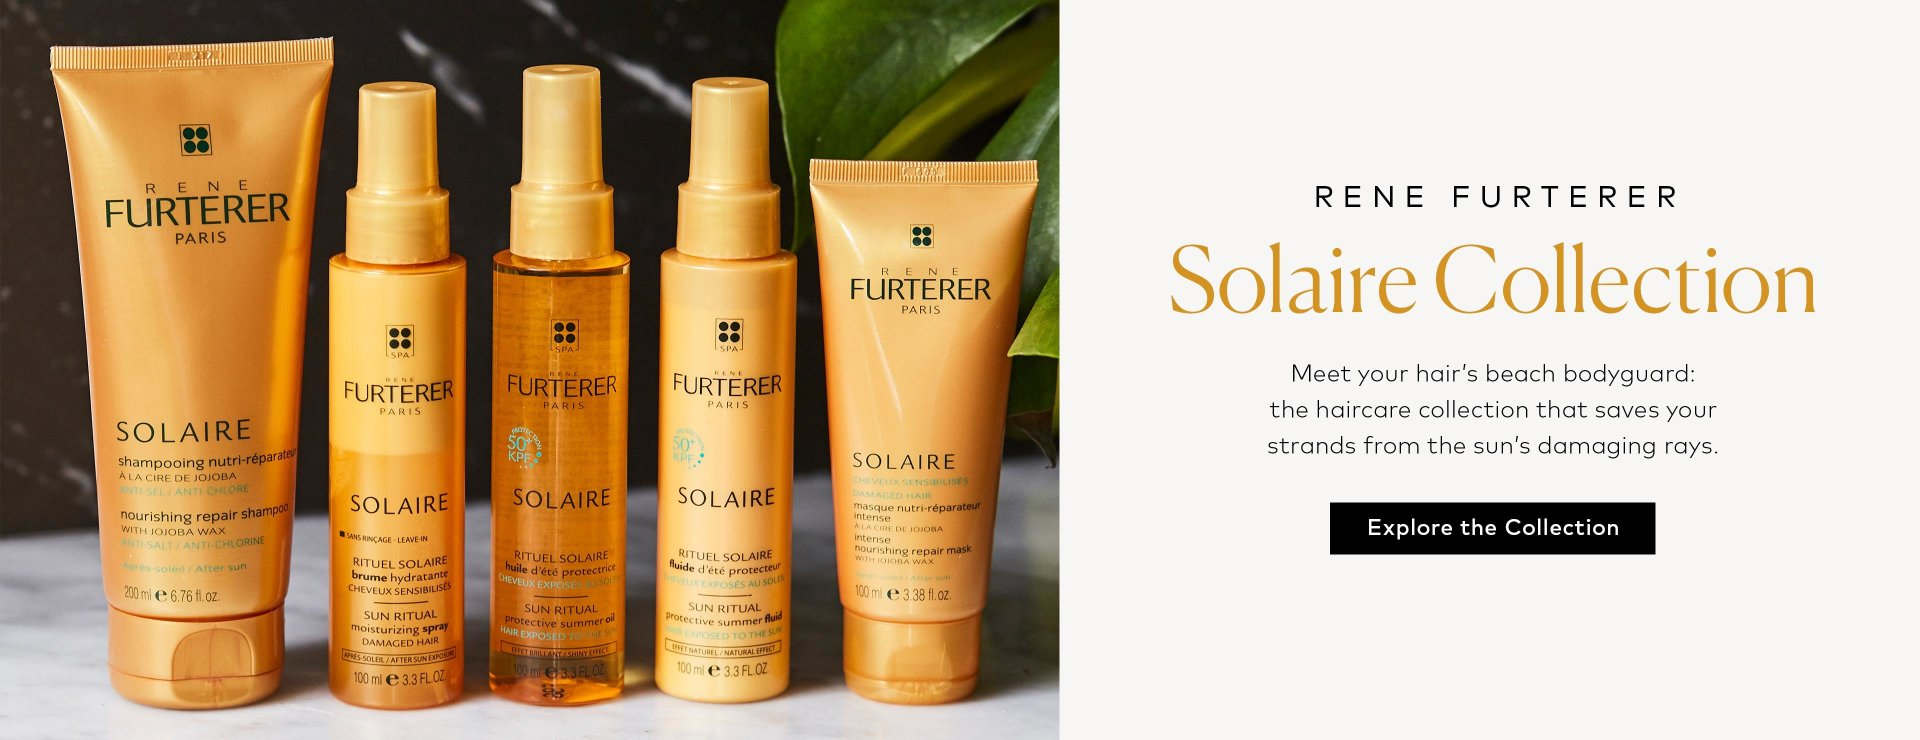 Shop Rene Furterer's Solaire Collection!